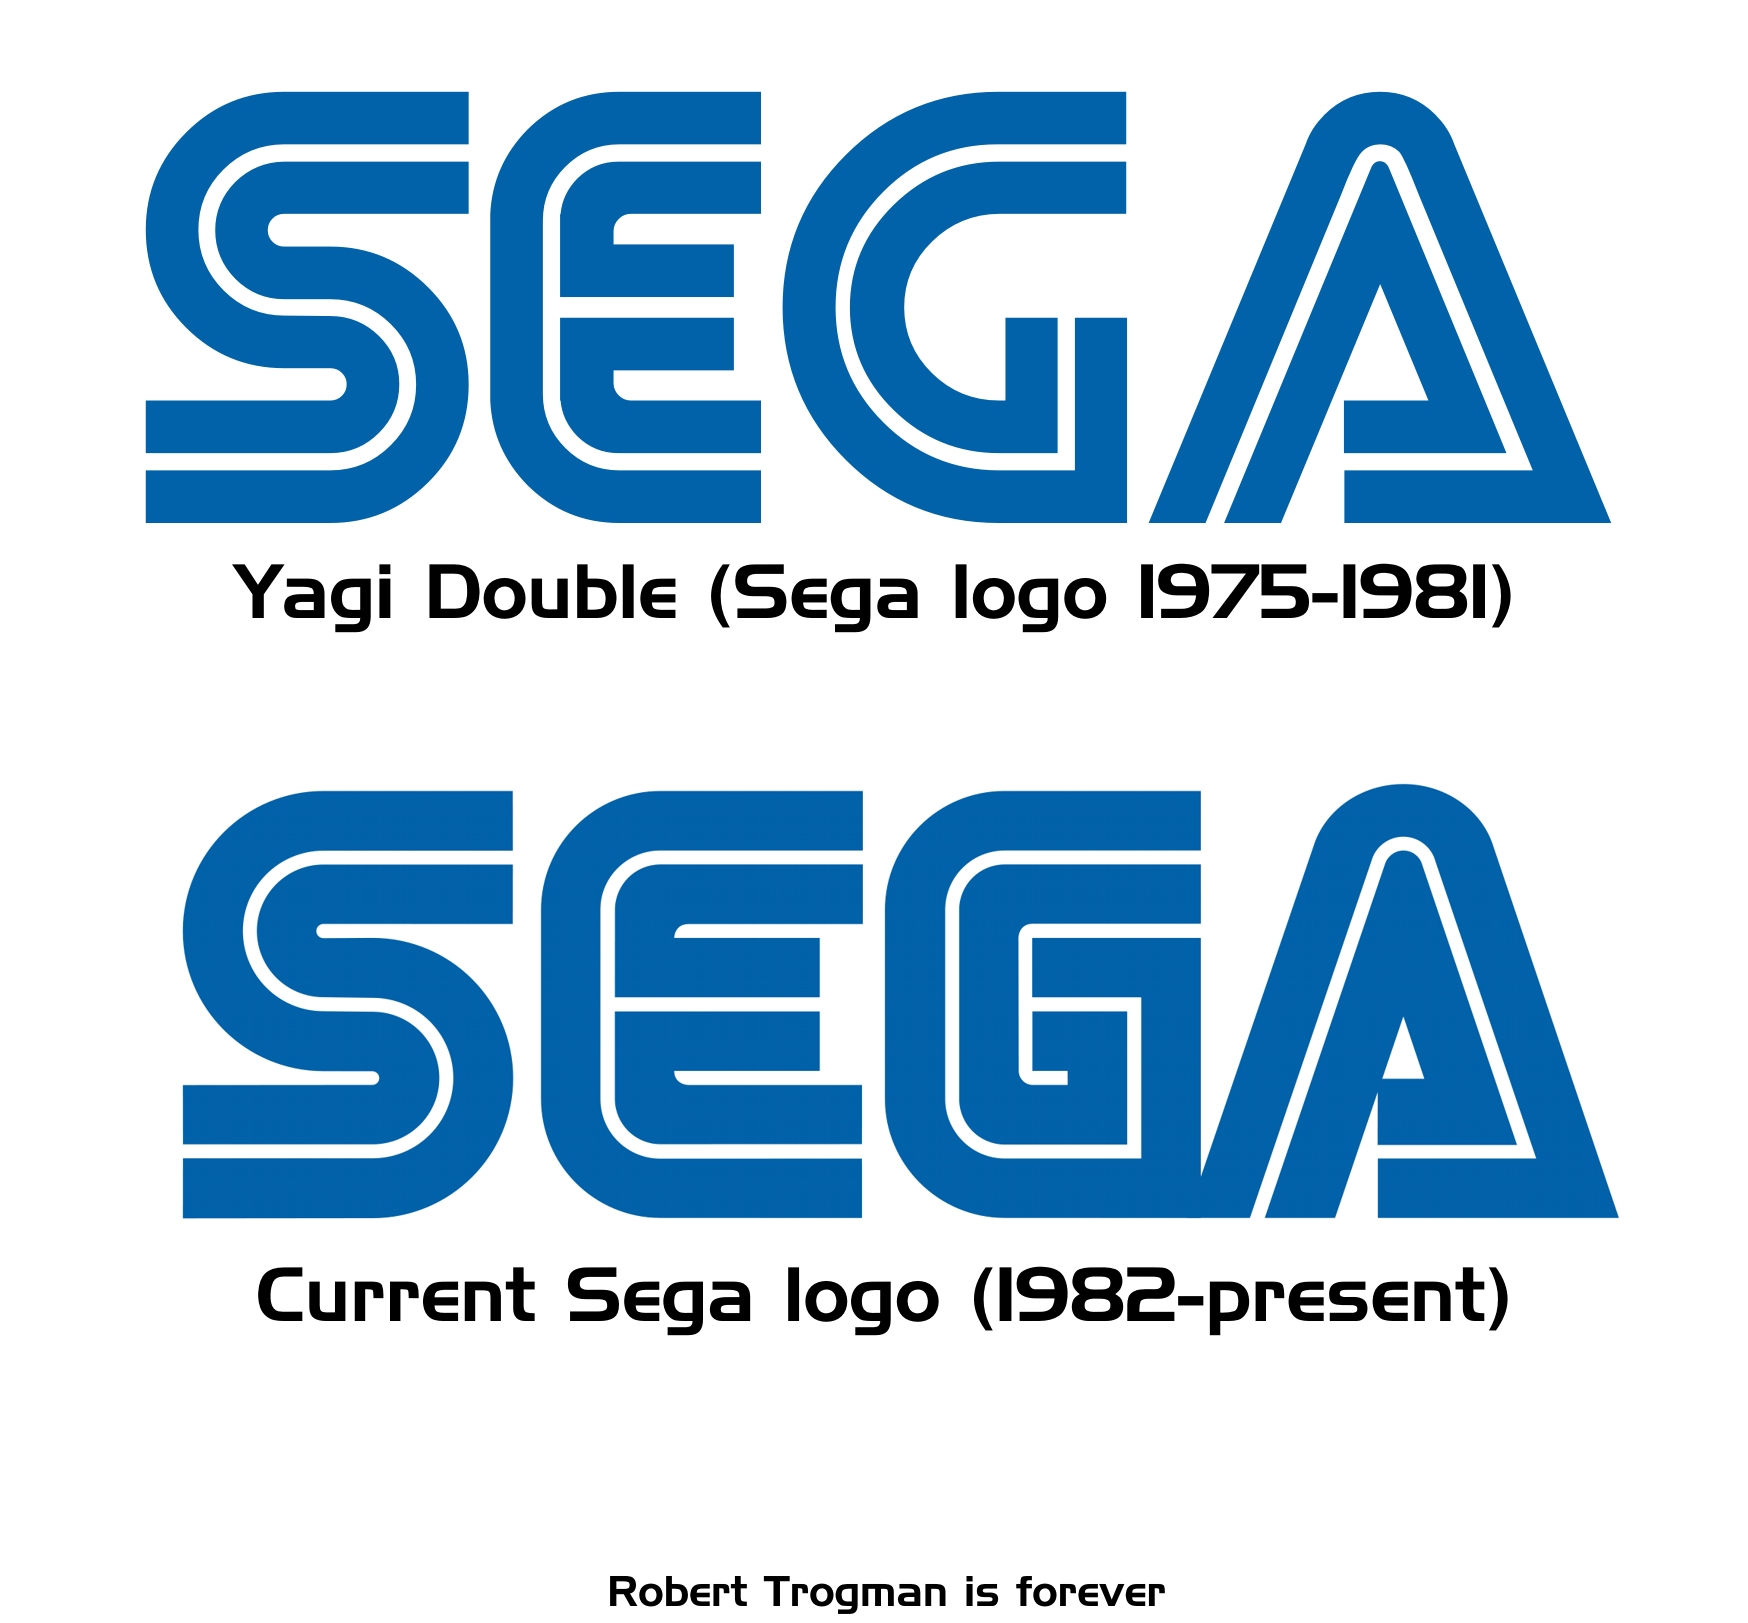 Allstate Sign In Page >> Image - Sega logo comparison.jpg - Sonic Fanon Wiki, the Sonic fanfiction wiki that anyone can edit!